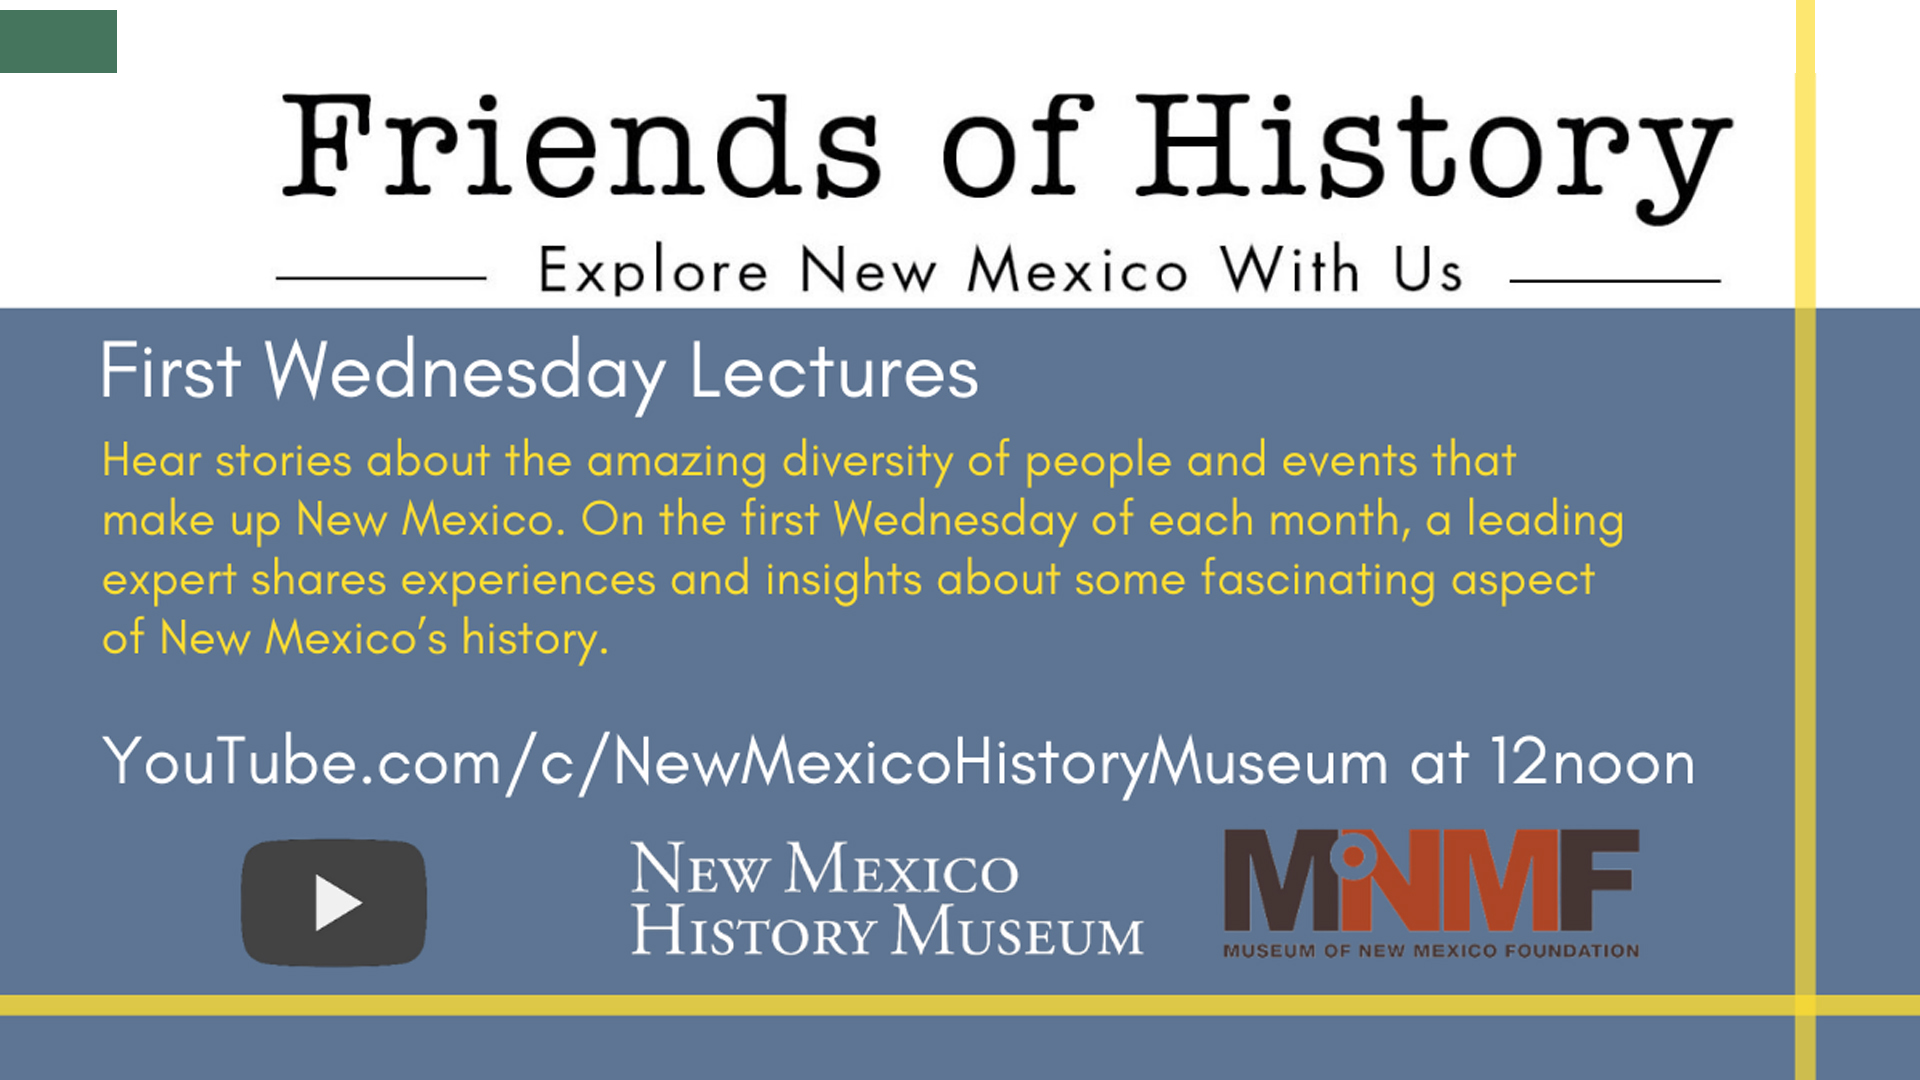 Friends of History | Explore New Mexico With Us